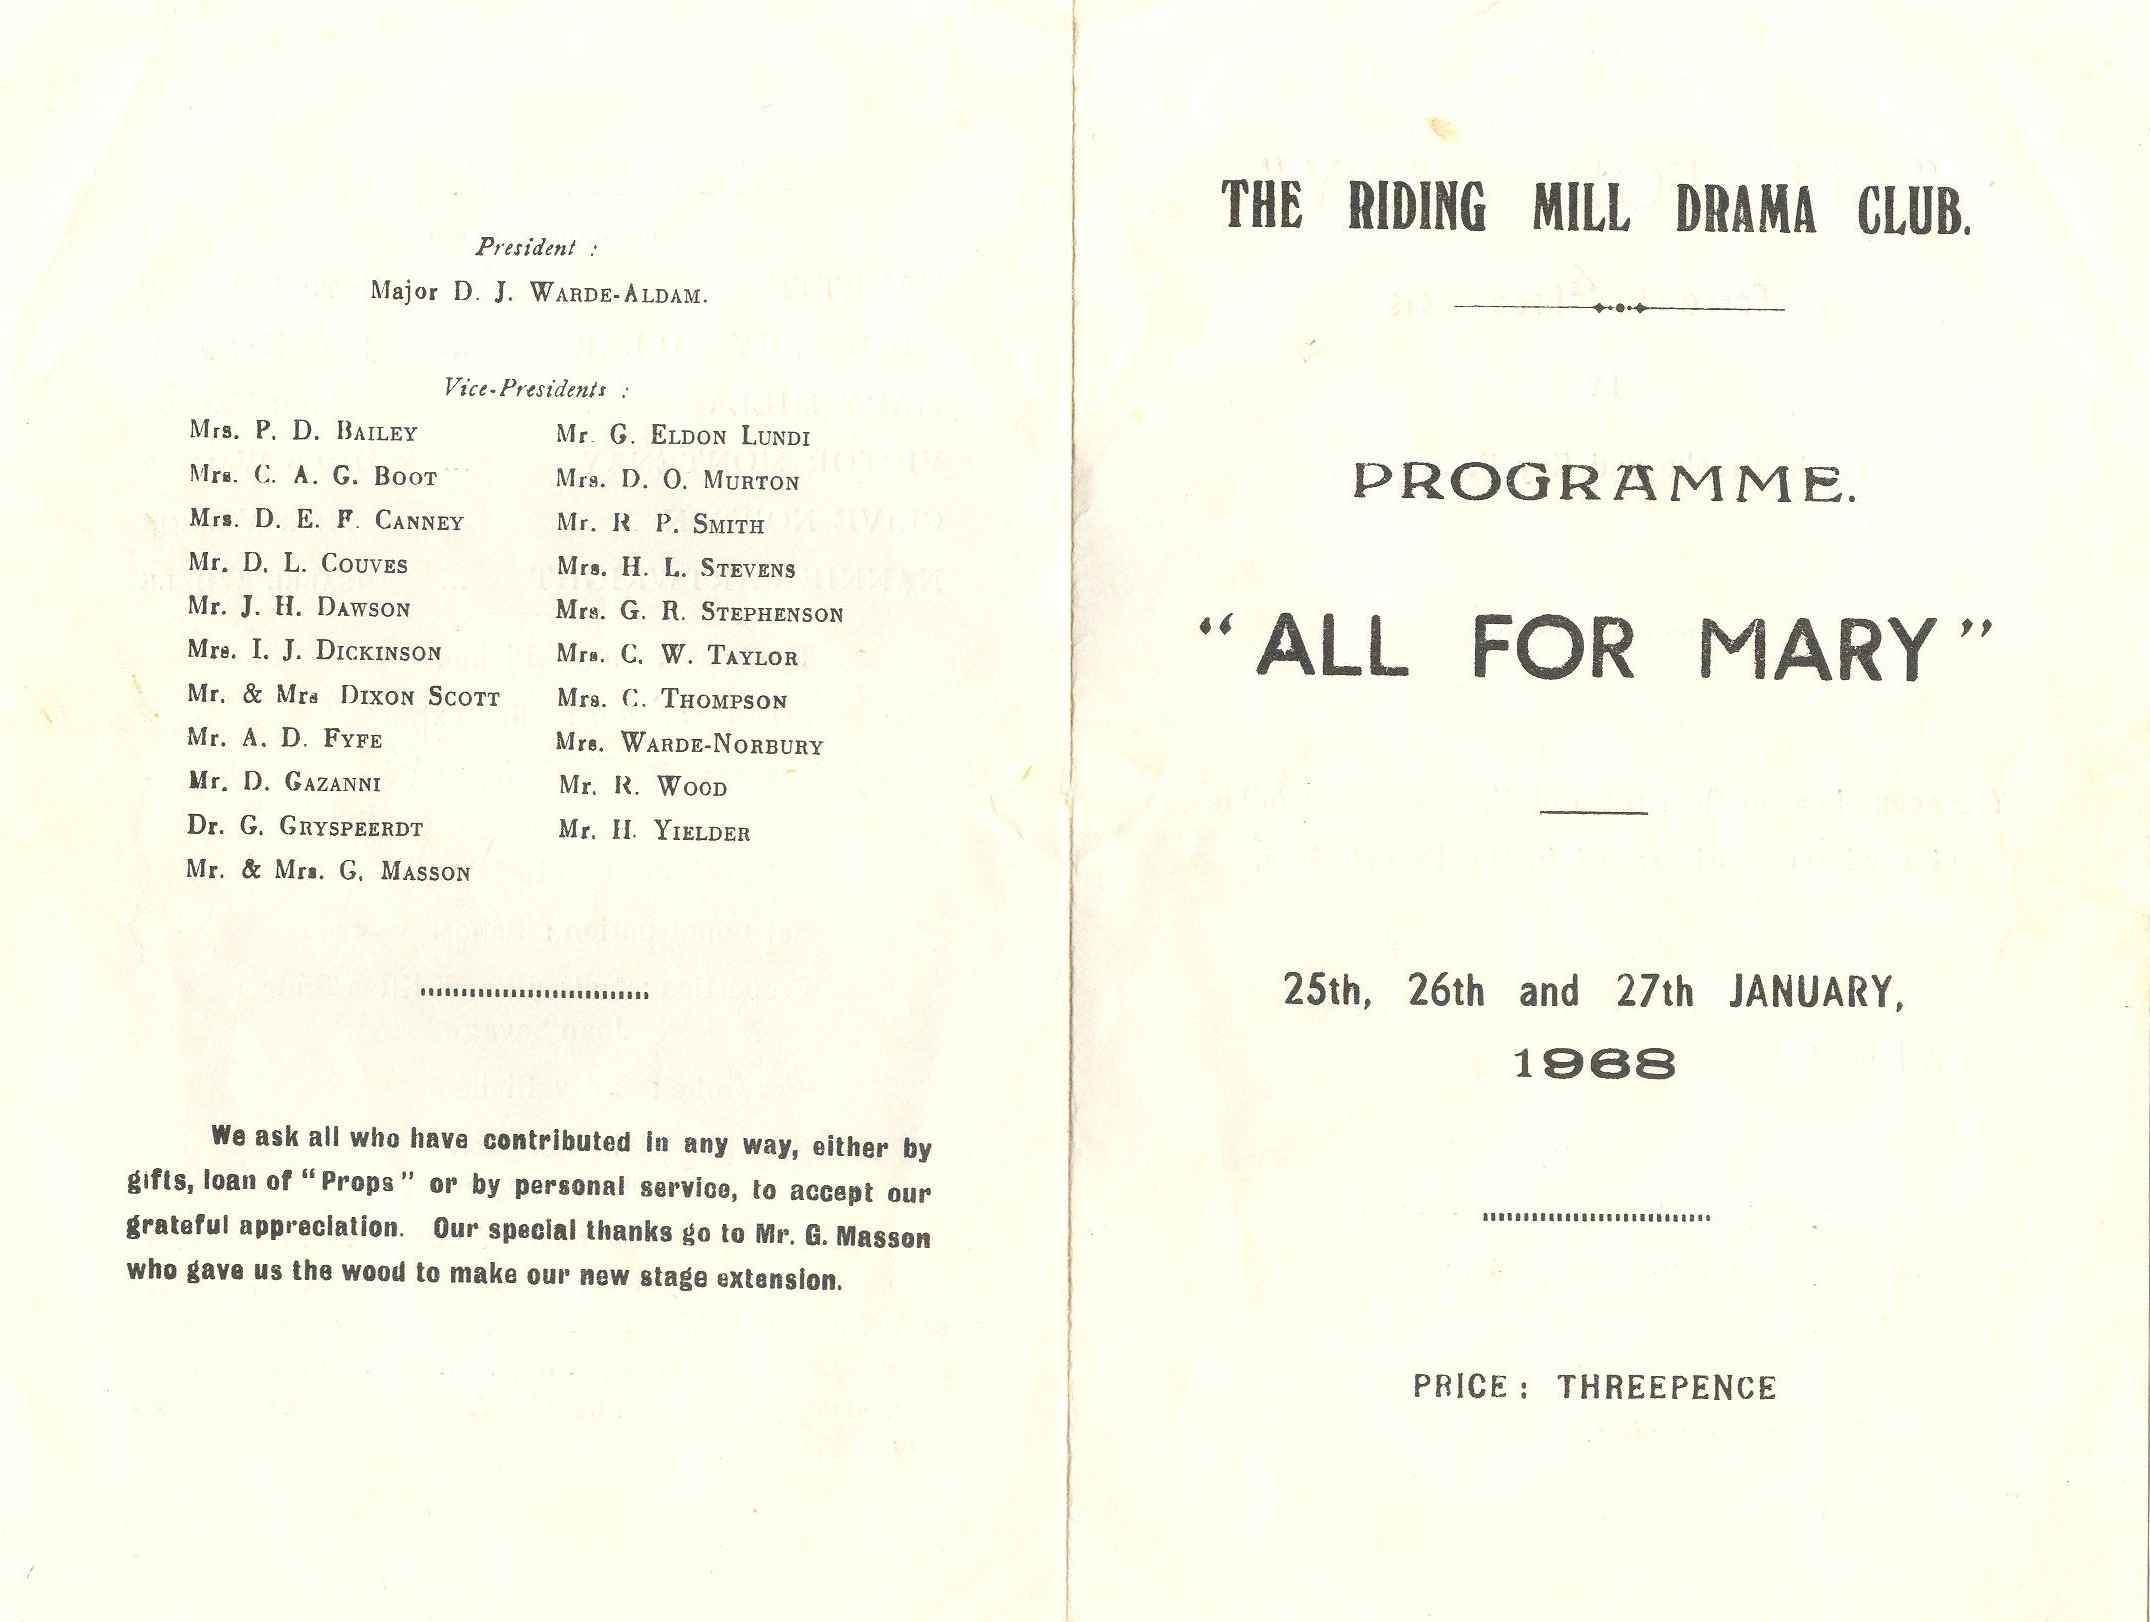 1968 Riding Mill Drama Club, All for Mar